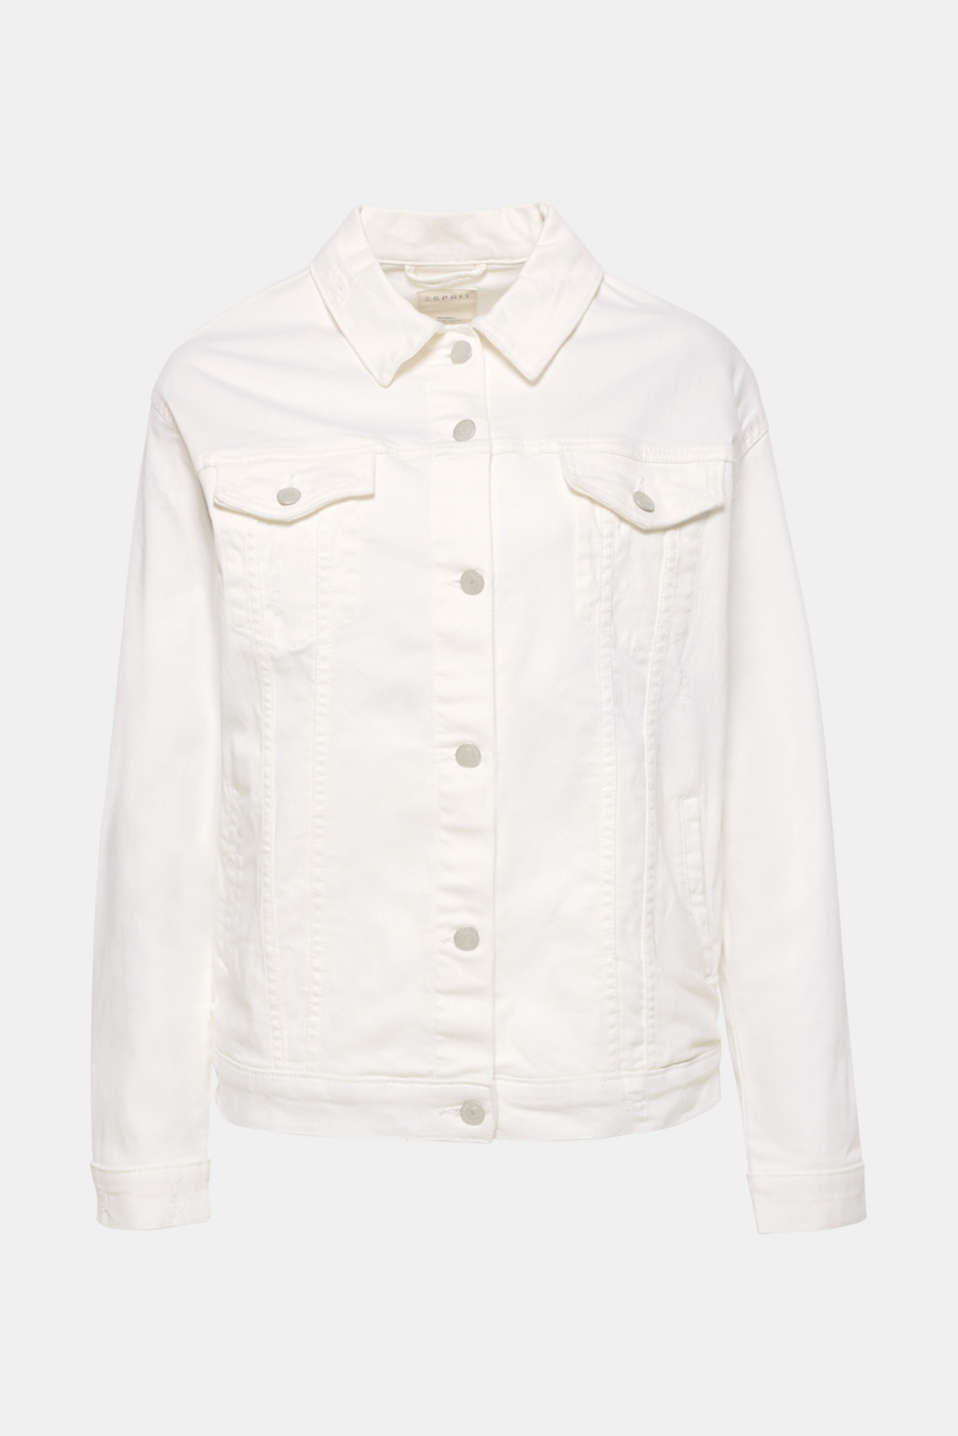 The casual oversized design and subtle vintage effects give this stretch denim jacket in summery off-white its coolness!